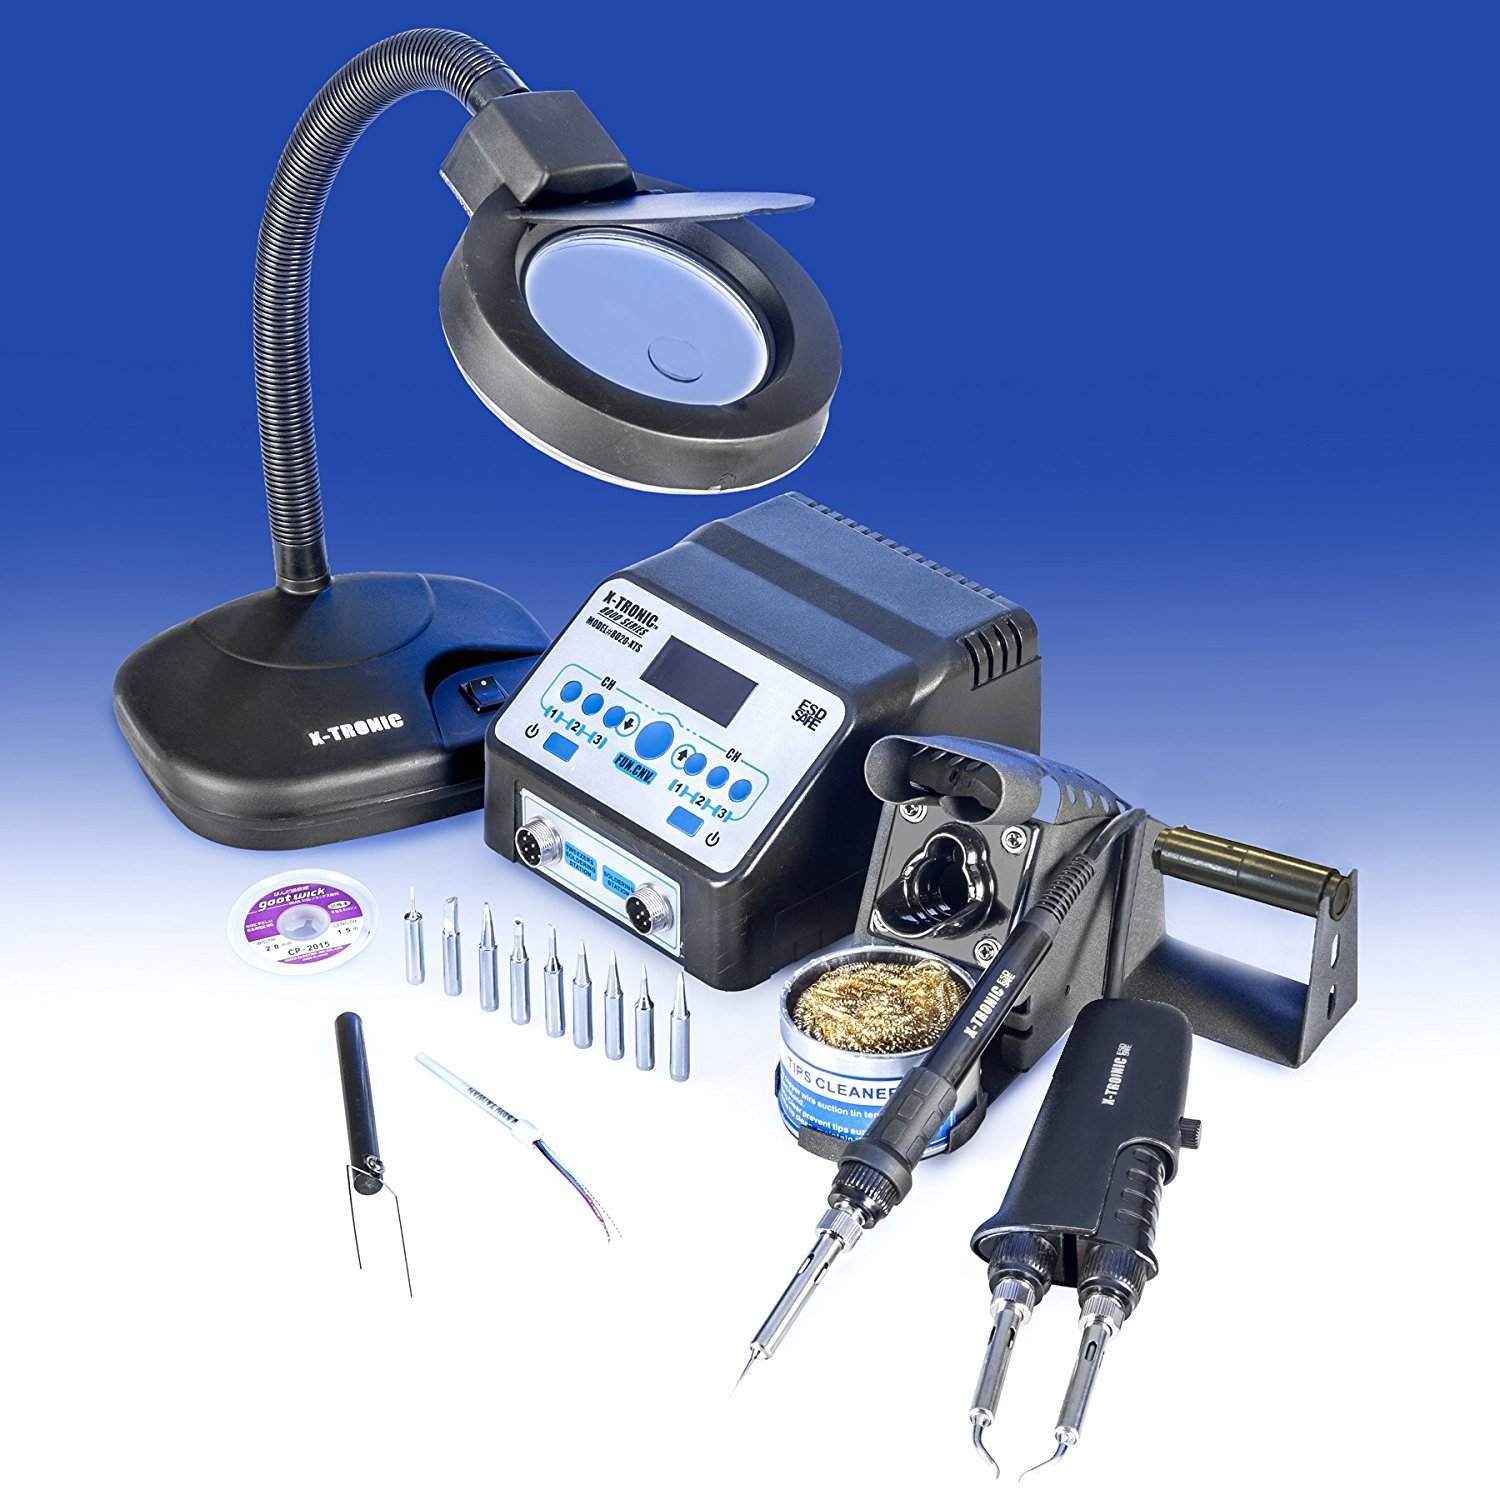 """USA EXCLUSIVE"" X-TRONIC 8020-XTS - ""2 IN 1"" Antistatic Digital Soldering Iron Station and Hot Tweezers - ESD Safe - C/F - Brass Tip Cleaner & Flux - IC Popper - 5X Magnifying Lamp"